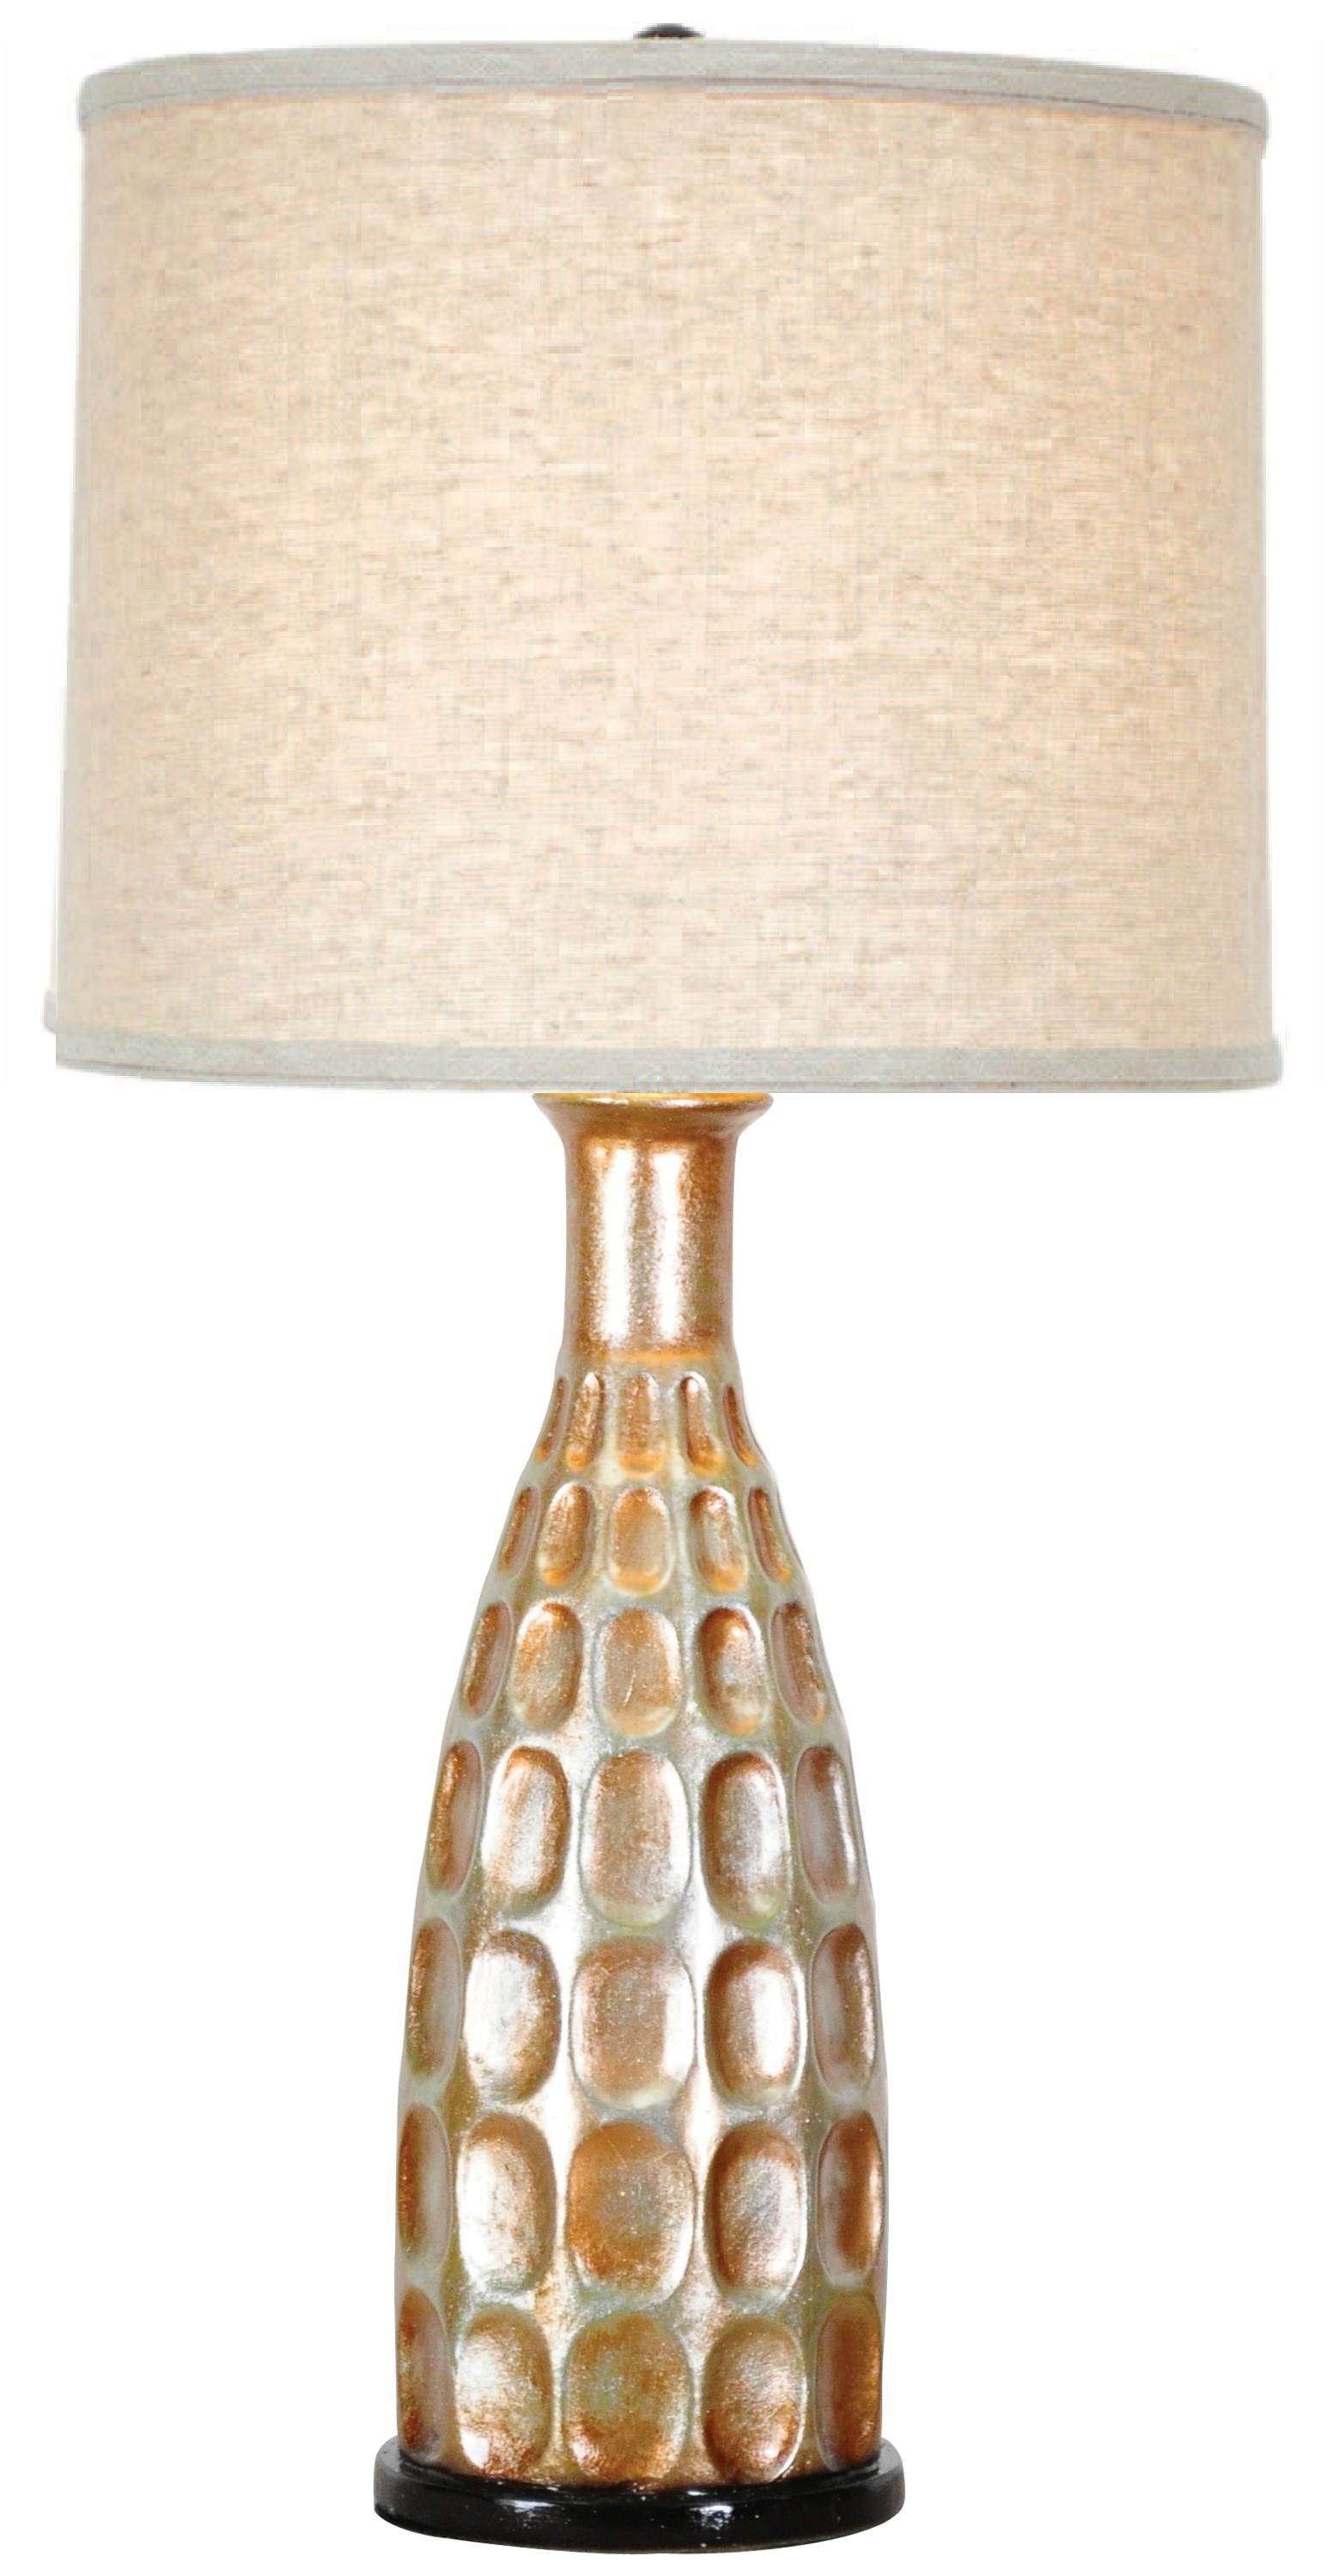 Artisan Lighting Home Decor Inc Image 10